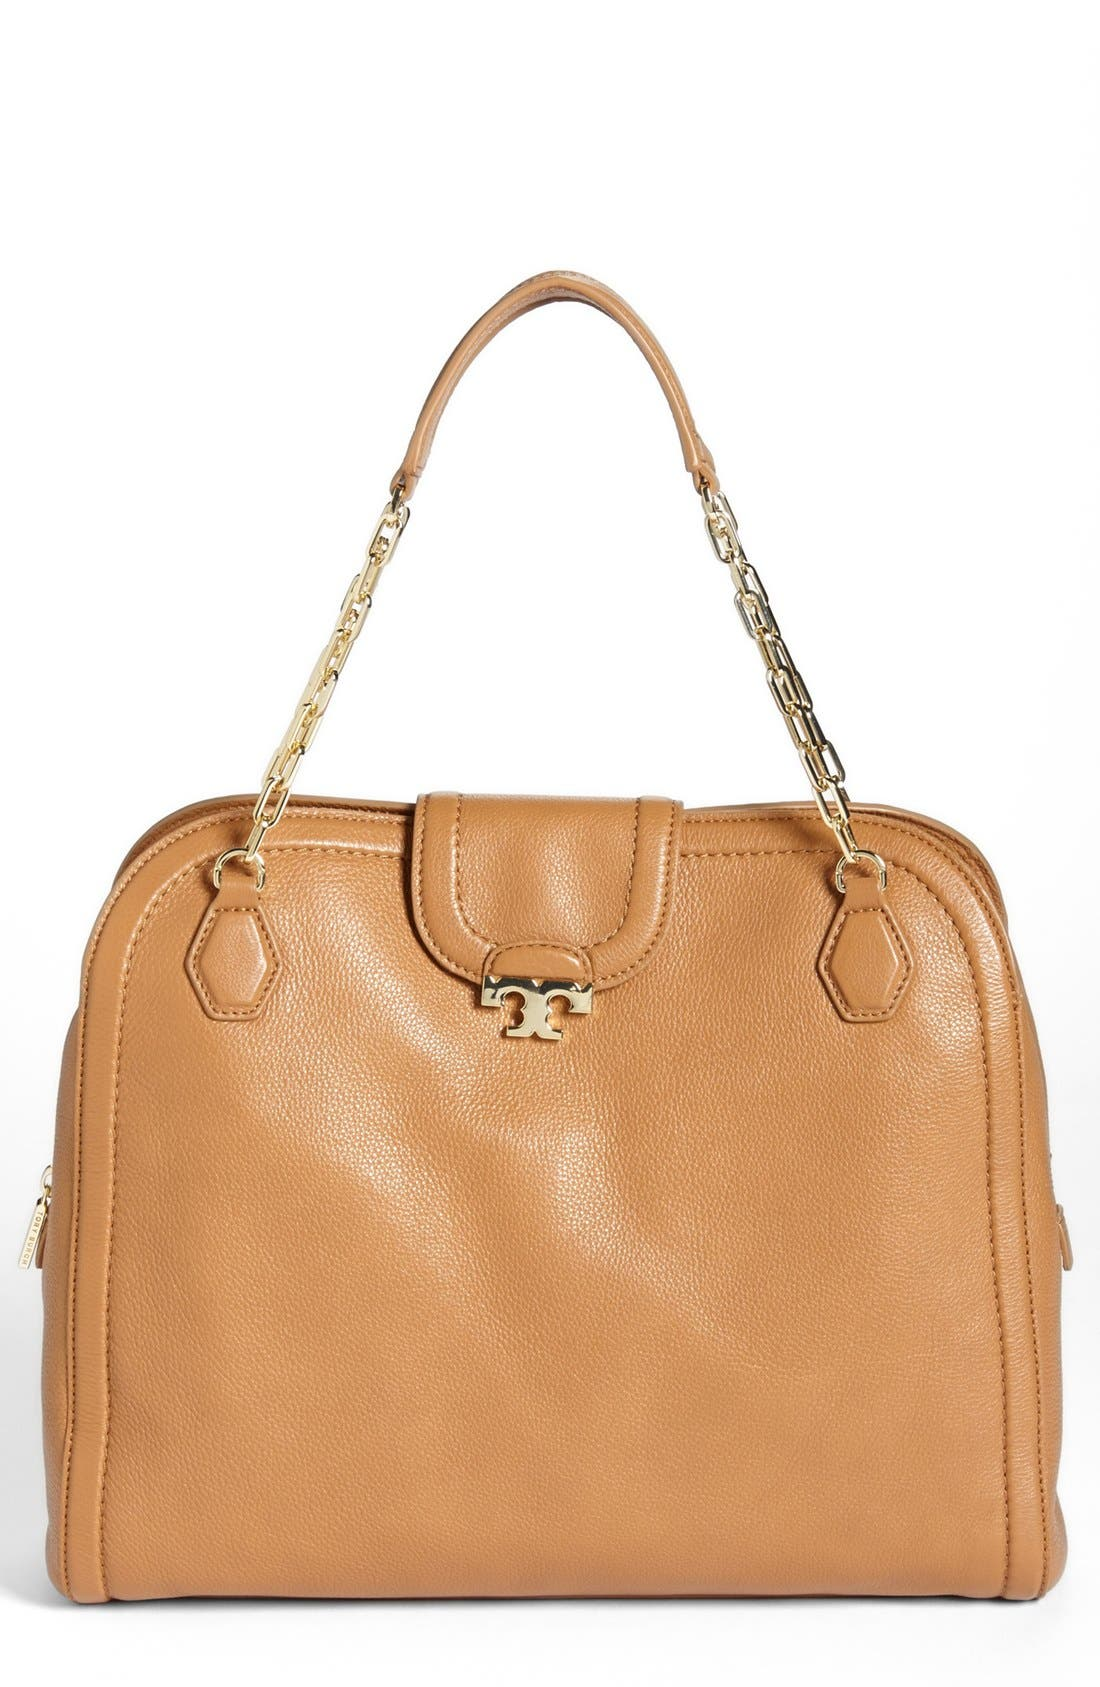 Alternate Image 1 Selected - Tory Burch 'Sammy' Satchel, Large